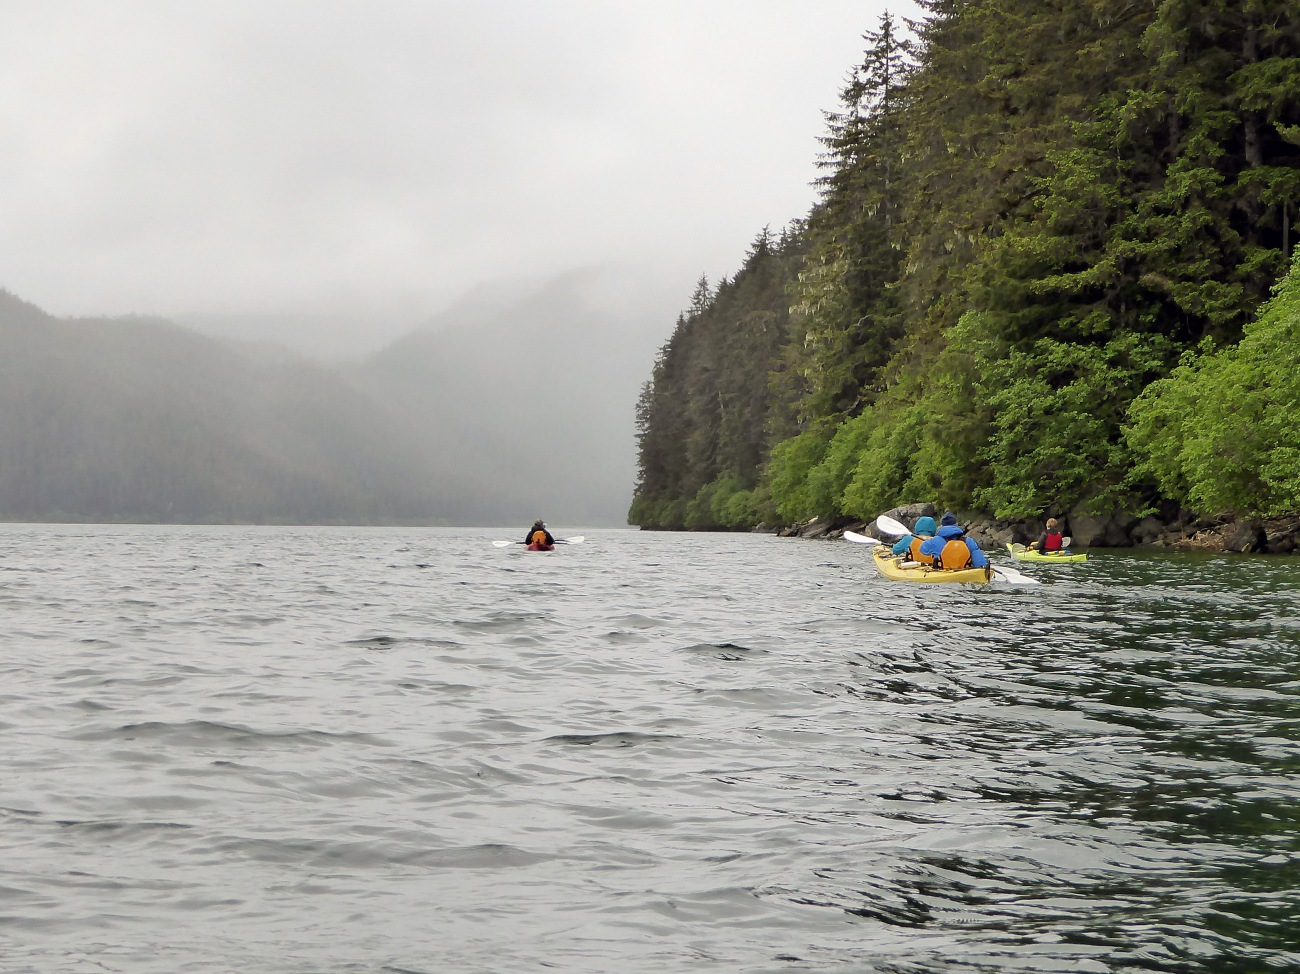 20160522_1947_Kayaking into the mists